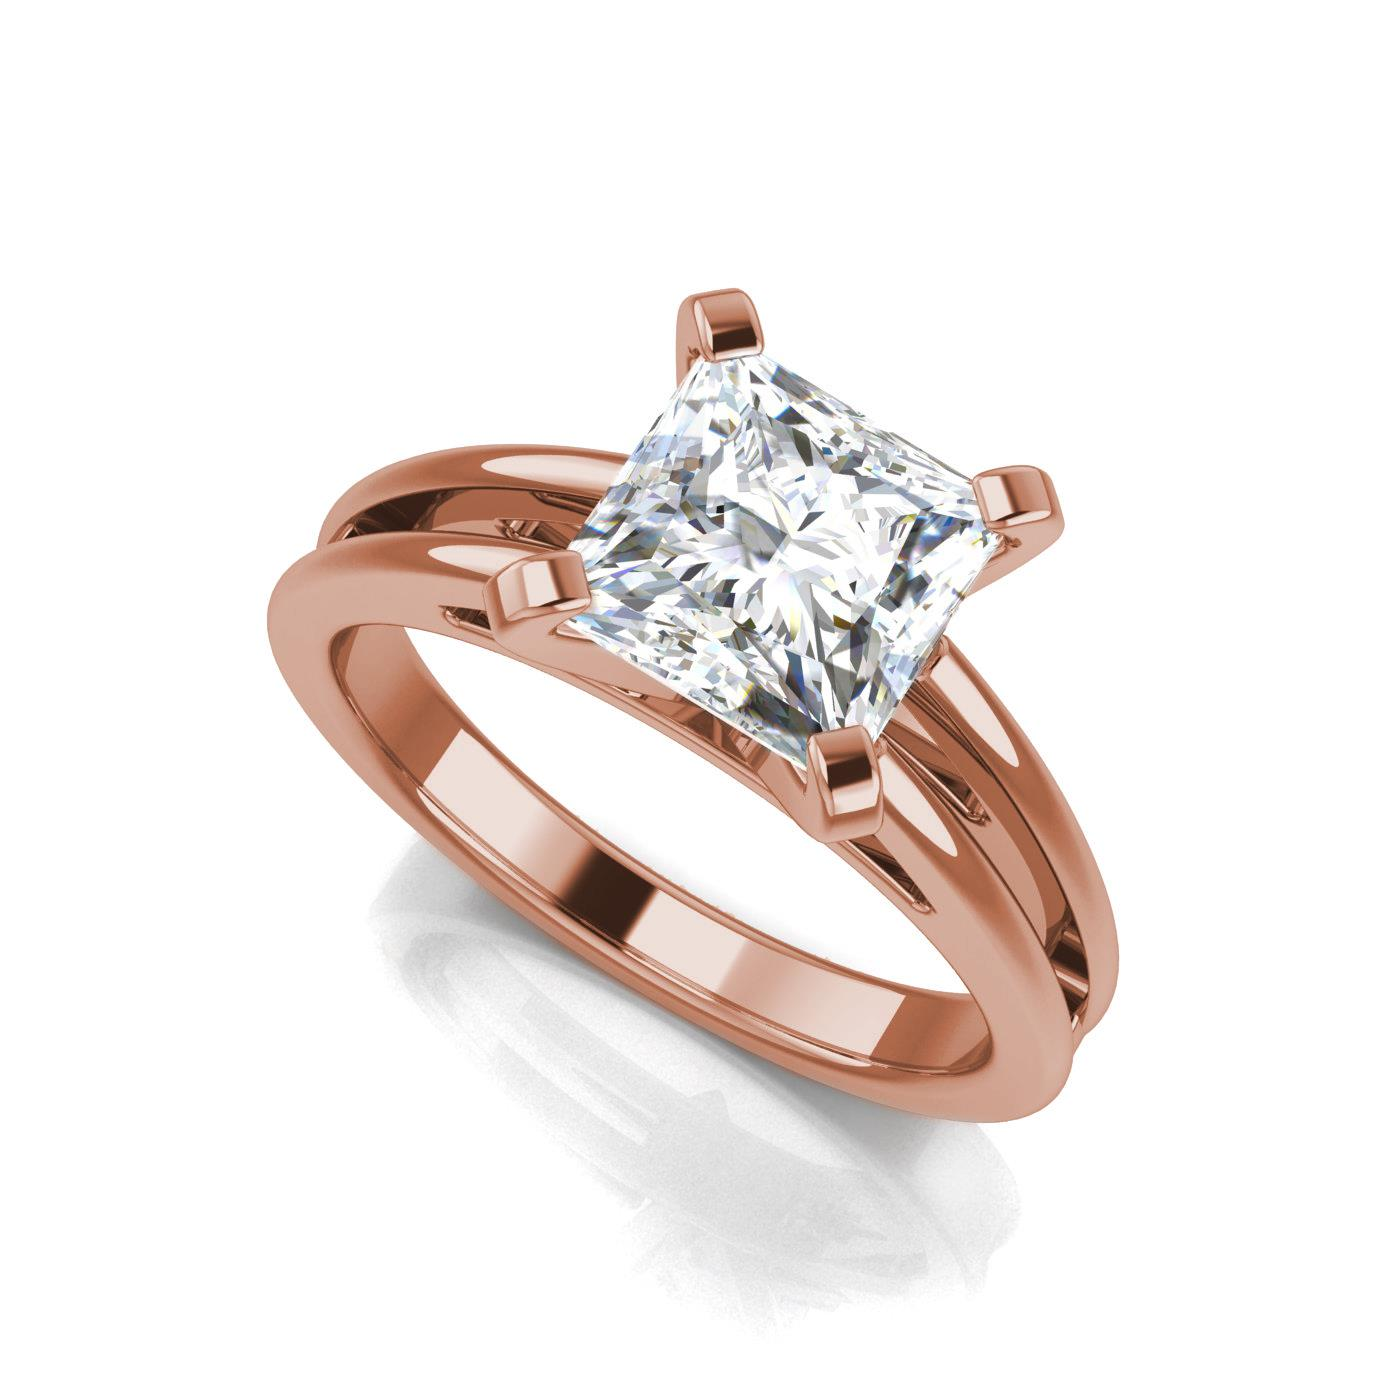 ring engagement rings solitaire jewelry product sarkisians prong